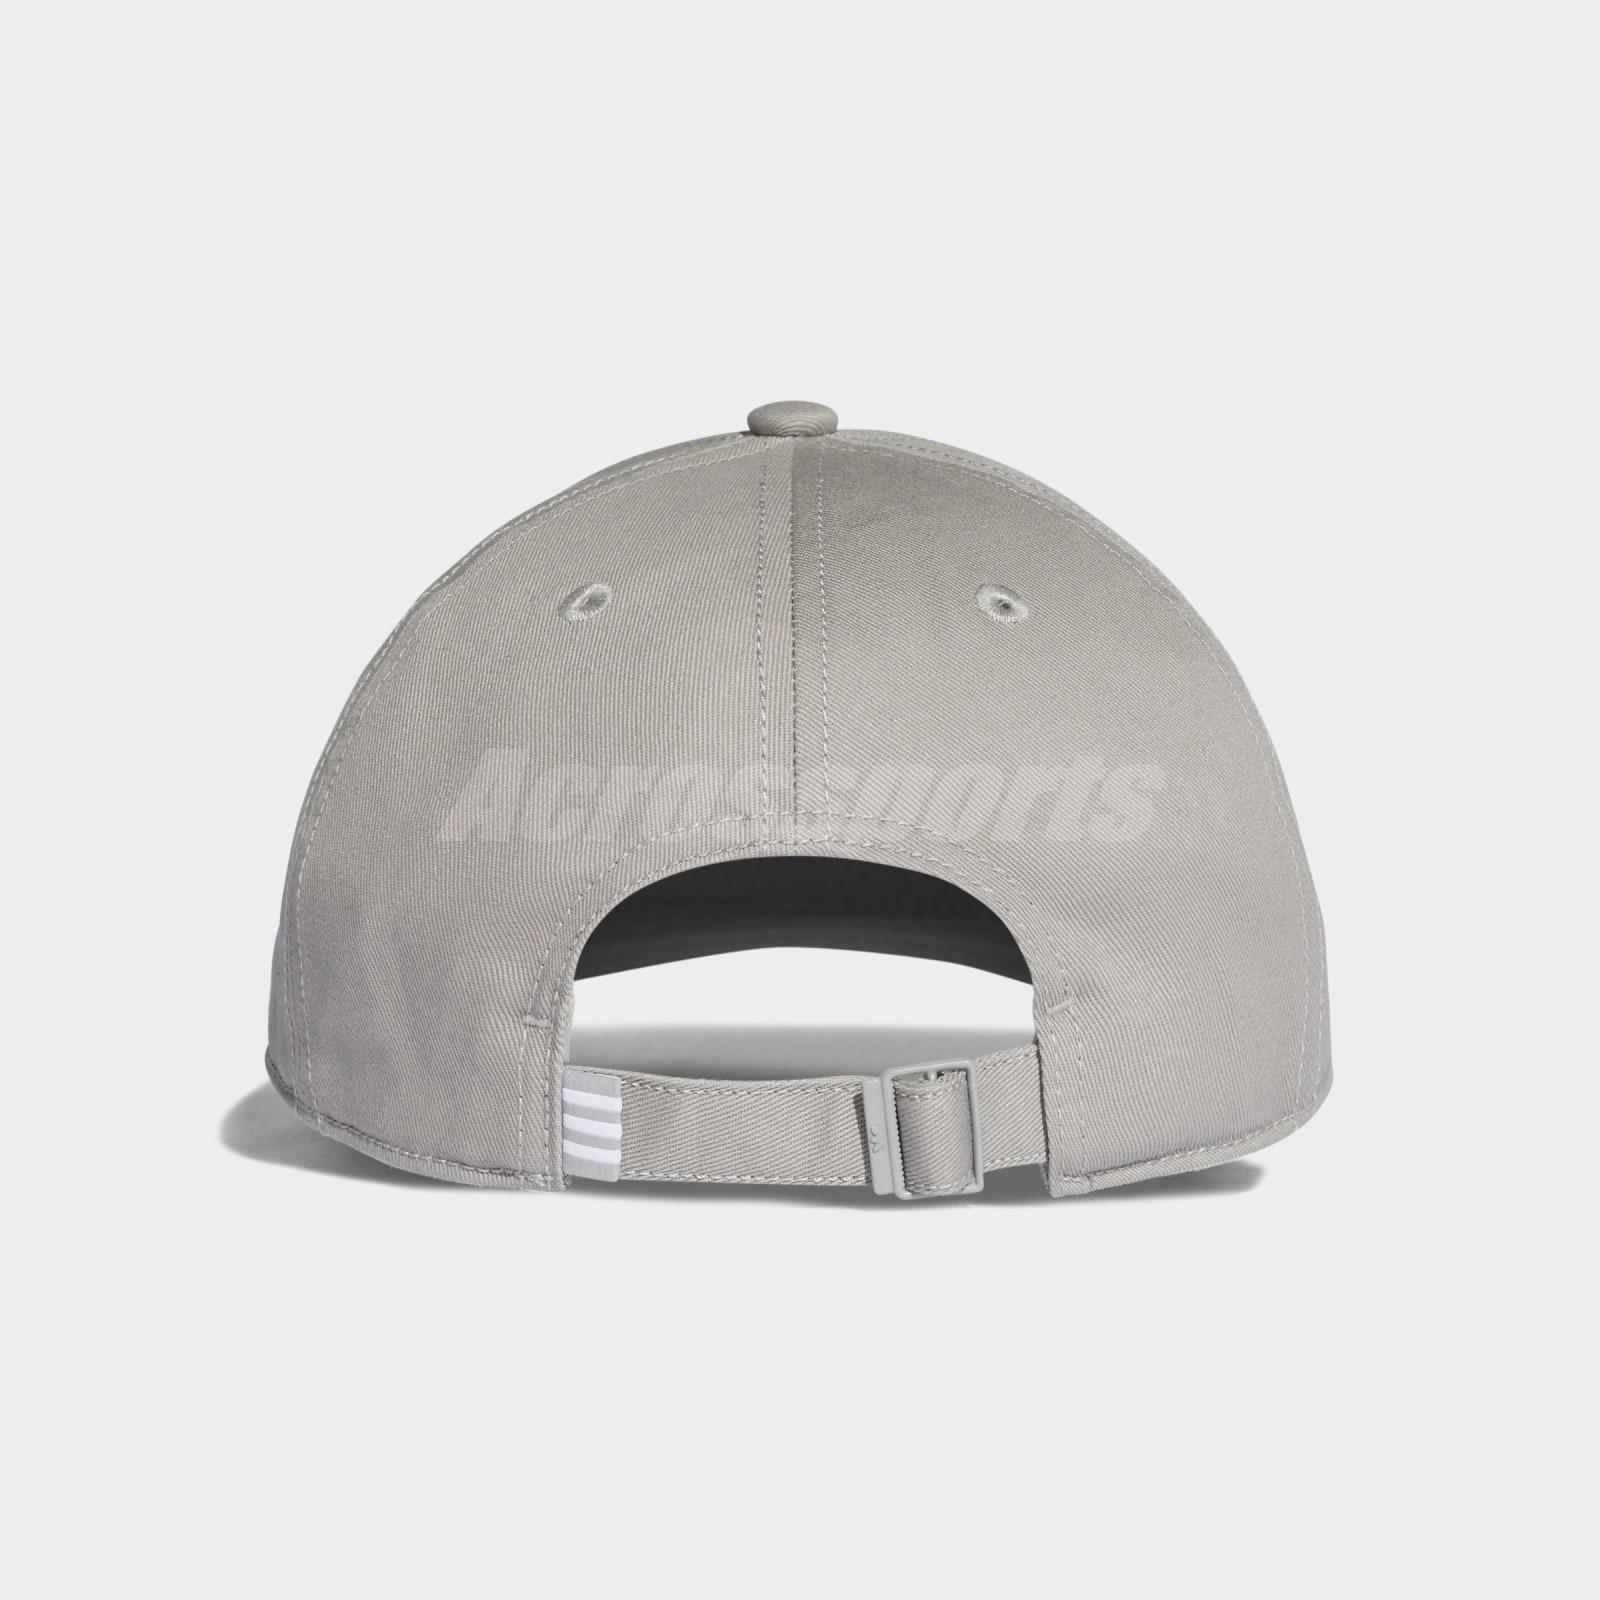 3c818679b2ae6 adidas Originals Trefoil Classic Grey White Cap Adjustable Strap Hat ...